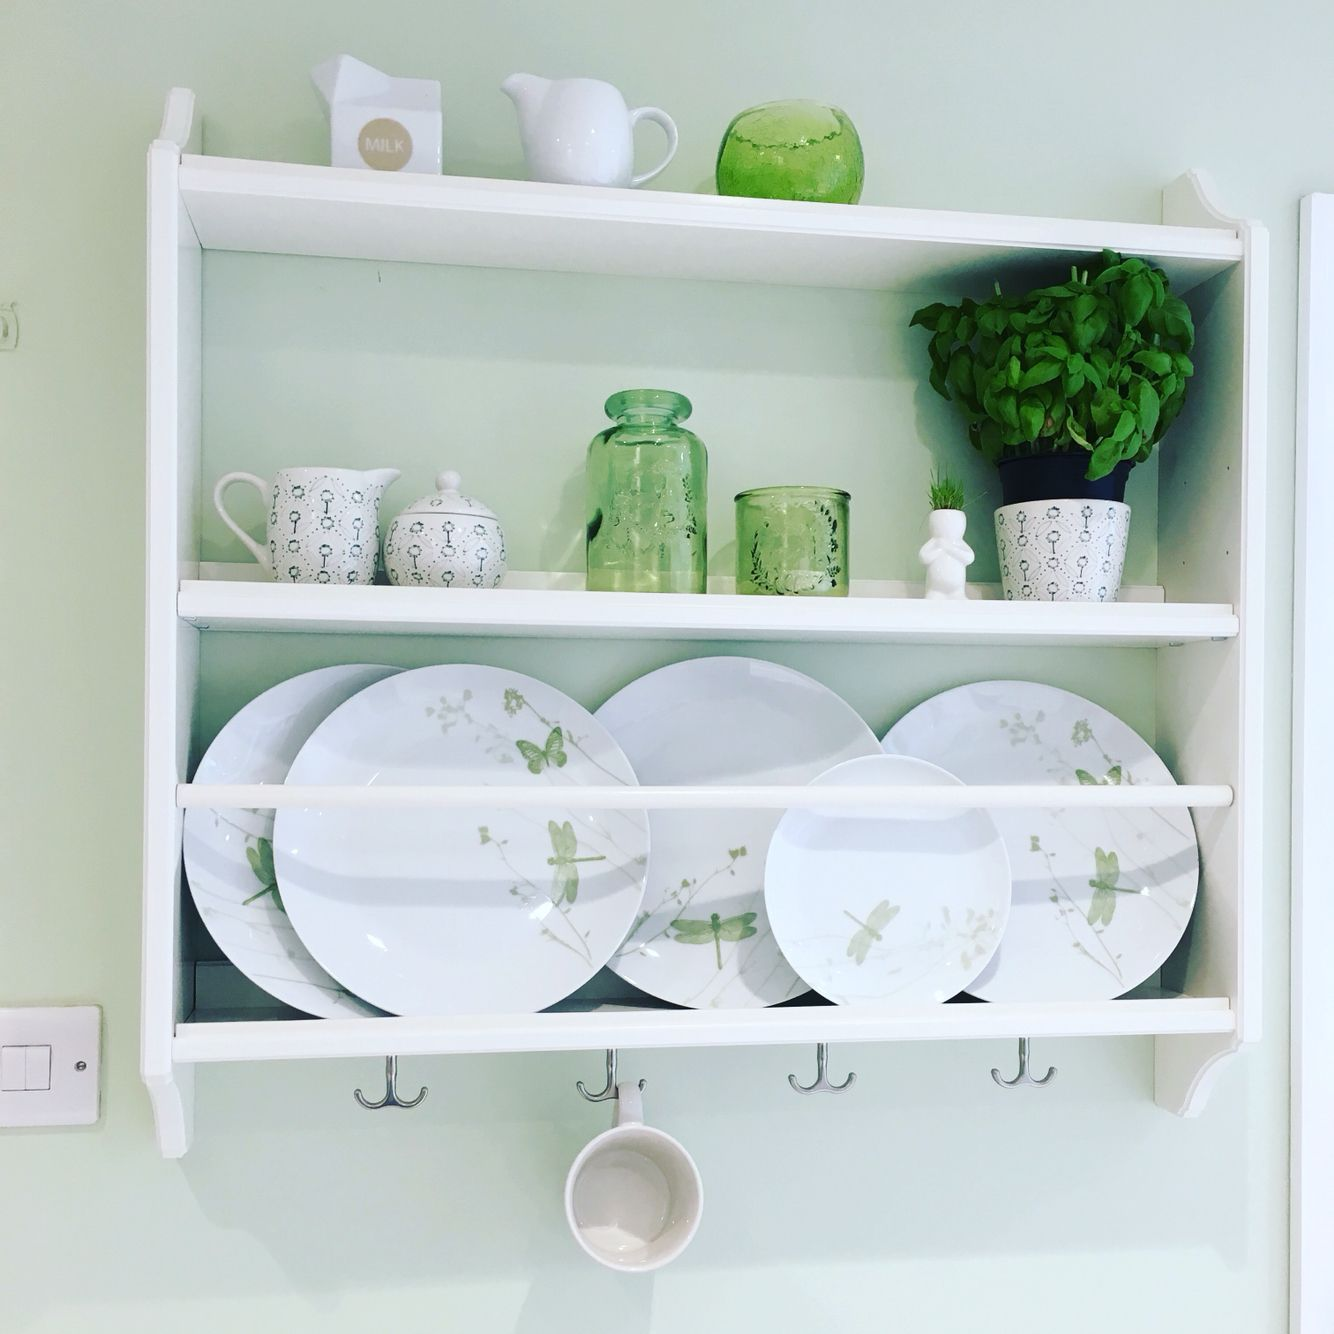 Stenstorp IKEA Plate Rack In A Green And White Kitchen